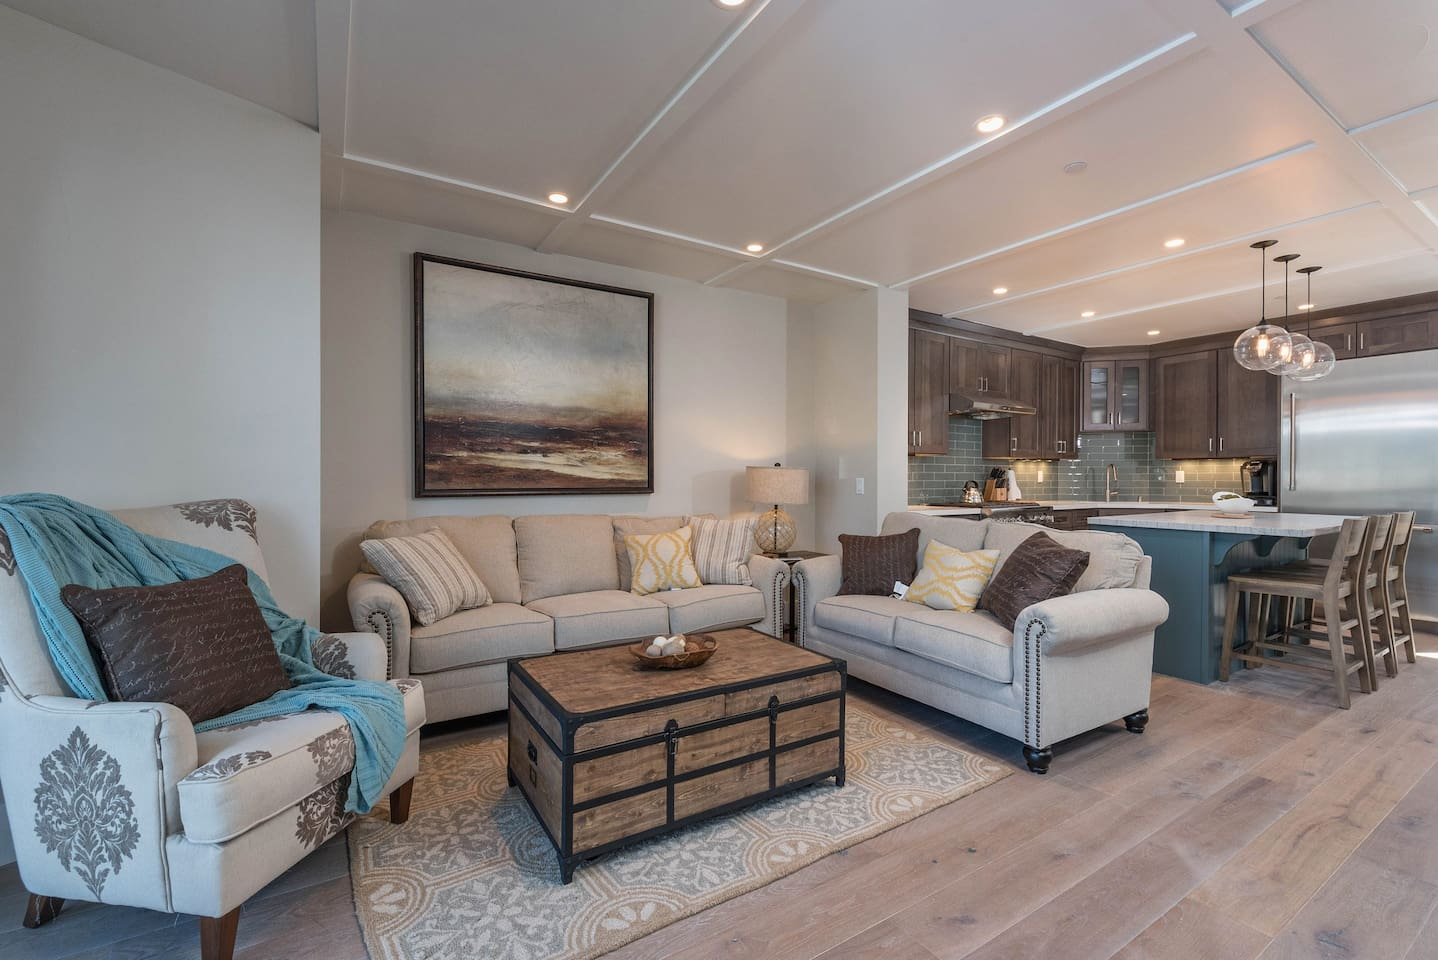 Hardwood floors frame the open-concept space, while 2 sofas and an armchair provide ample seating in the living area.